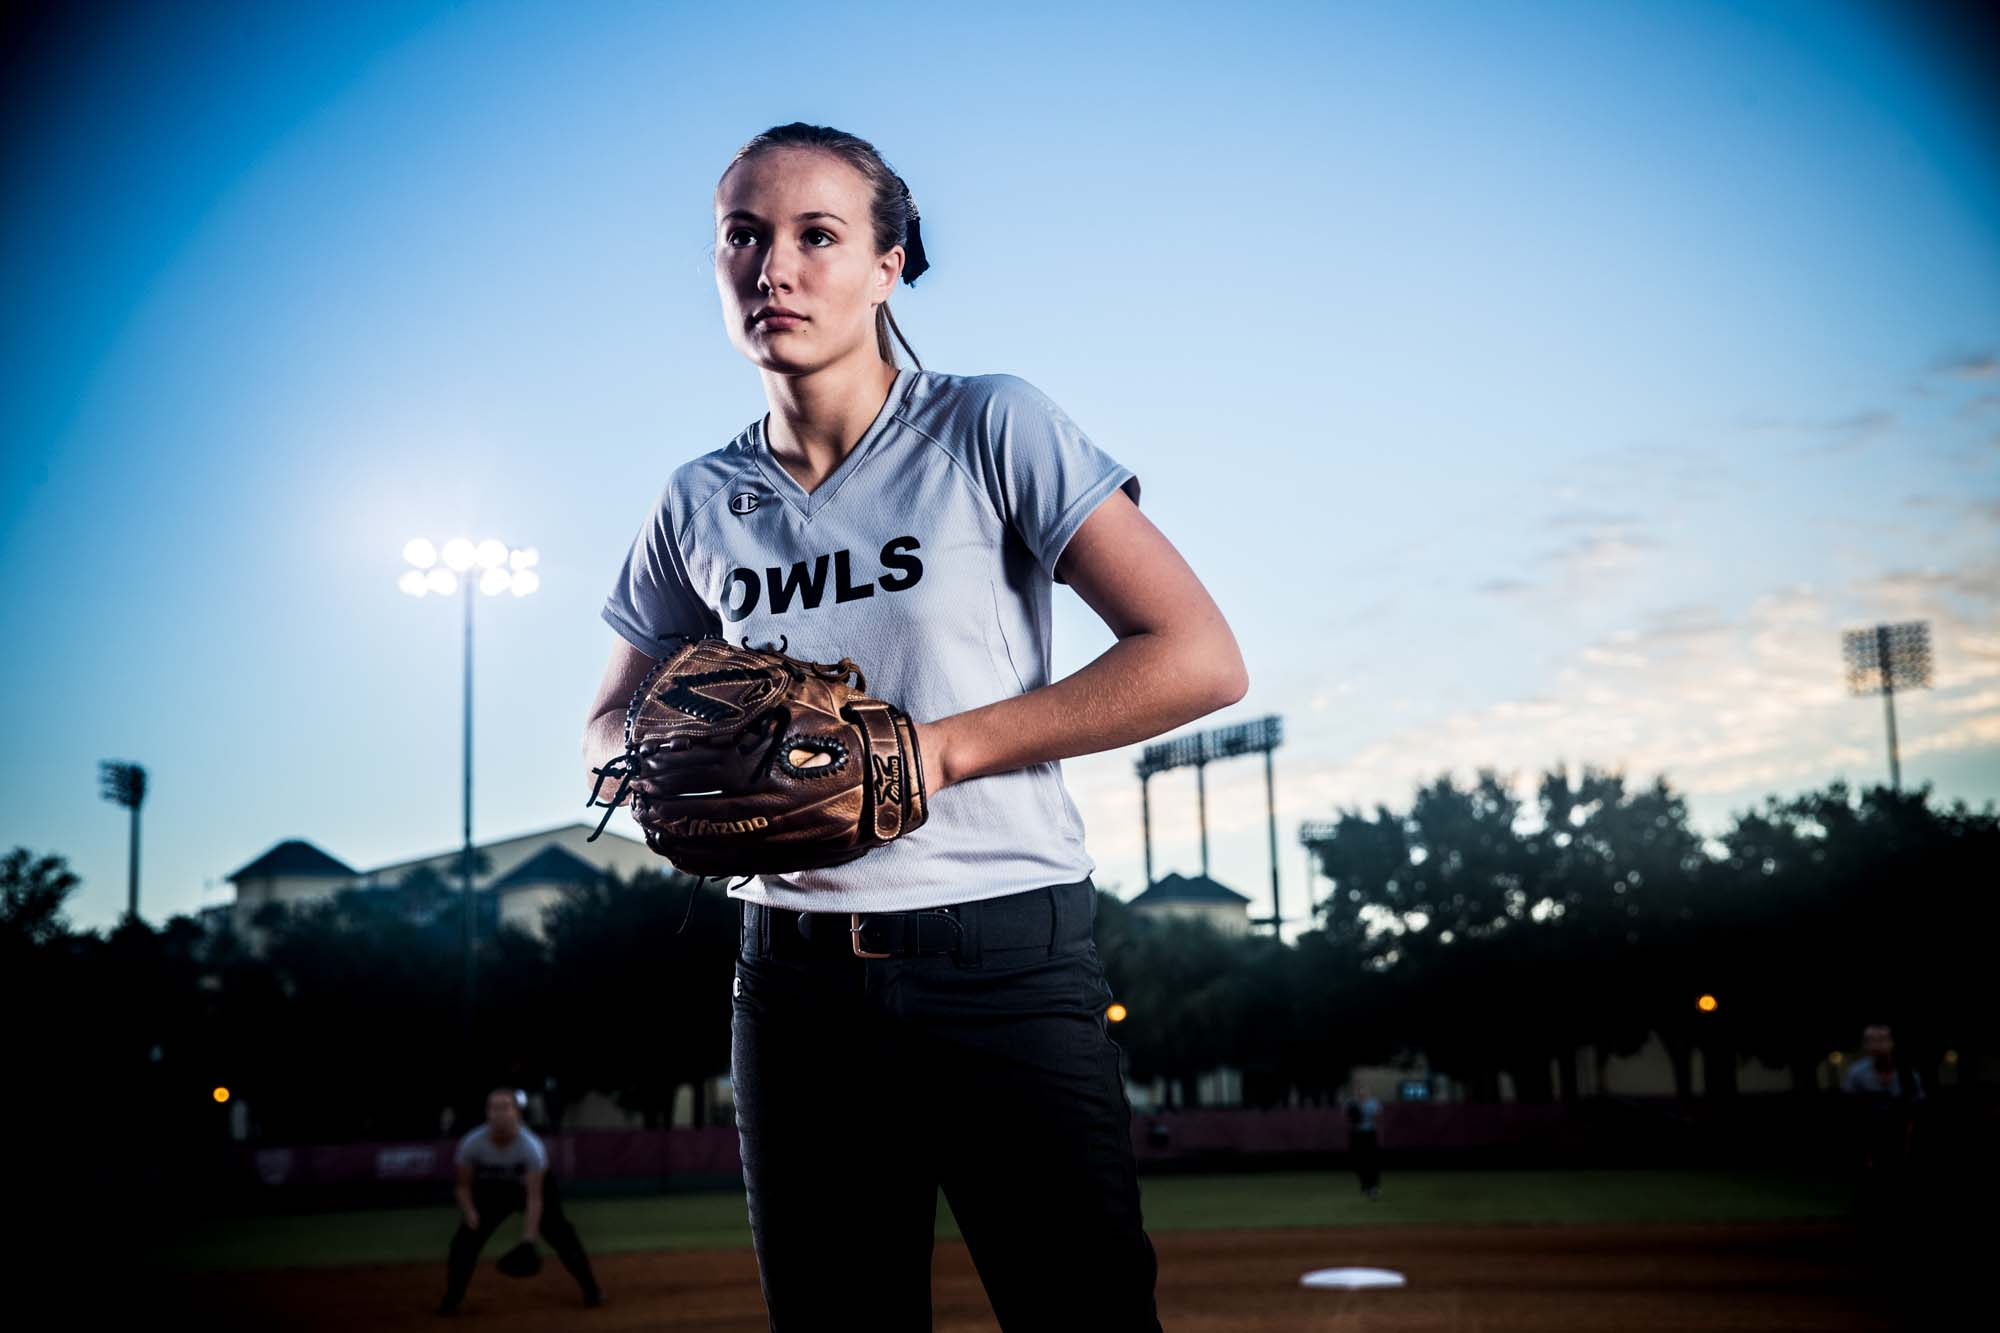 ESPN_Softball_Pitcher_Port_0463